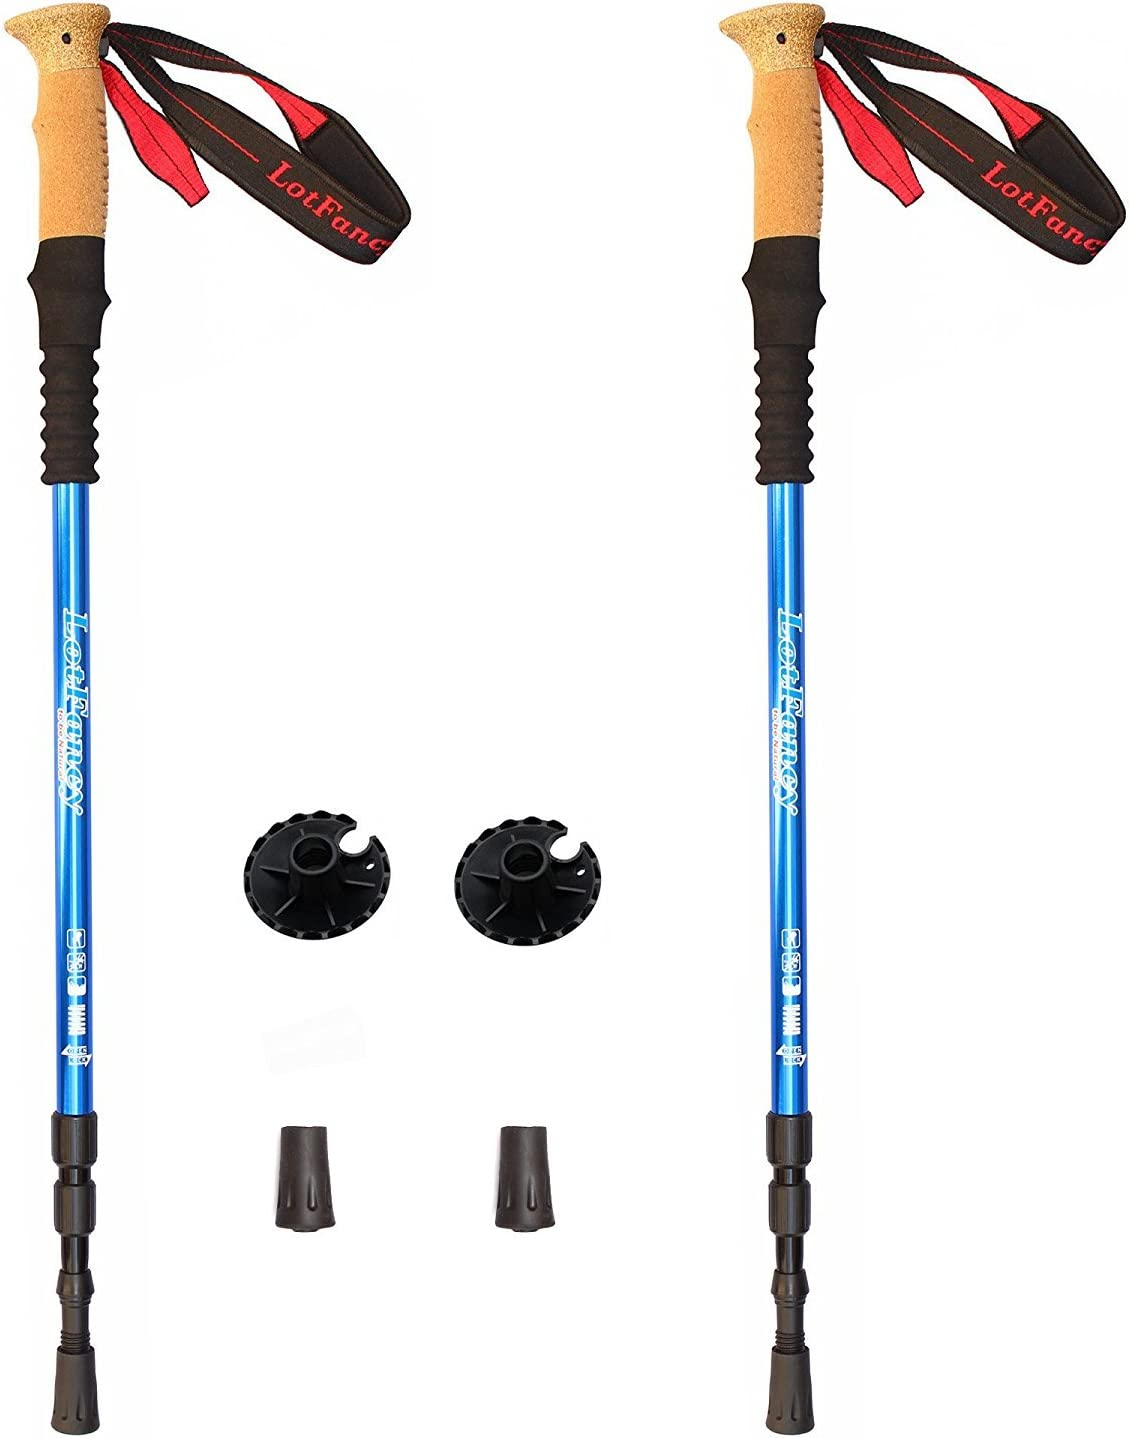 LotFancy Trekking Poles – Ultralight Walking Hiking Sticks, Adjustable Trail Poles for Women Men